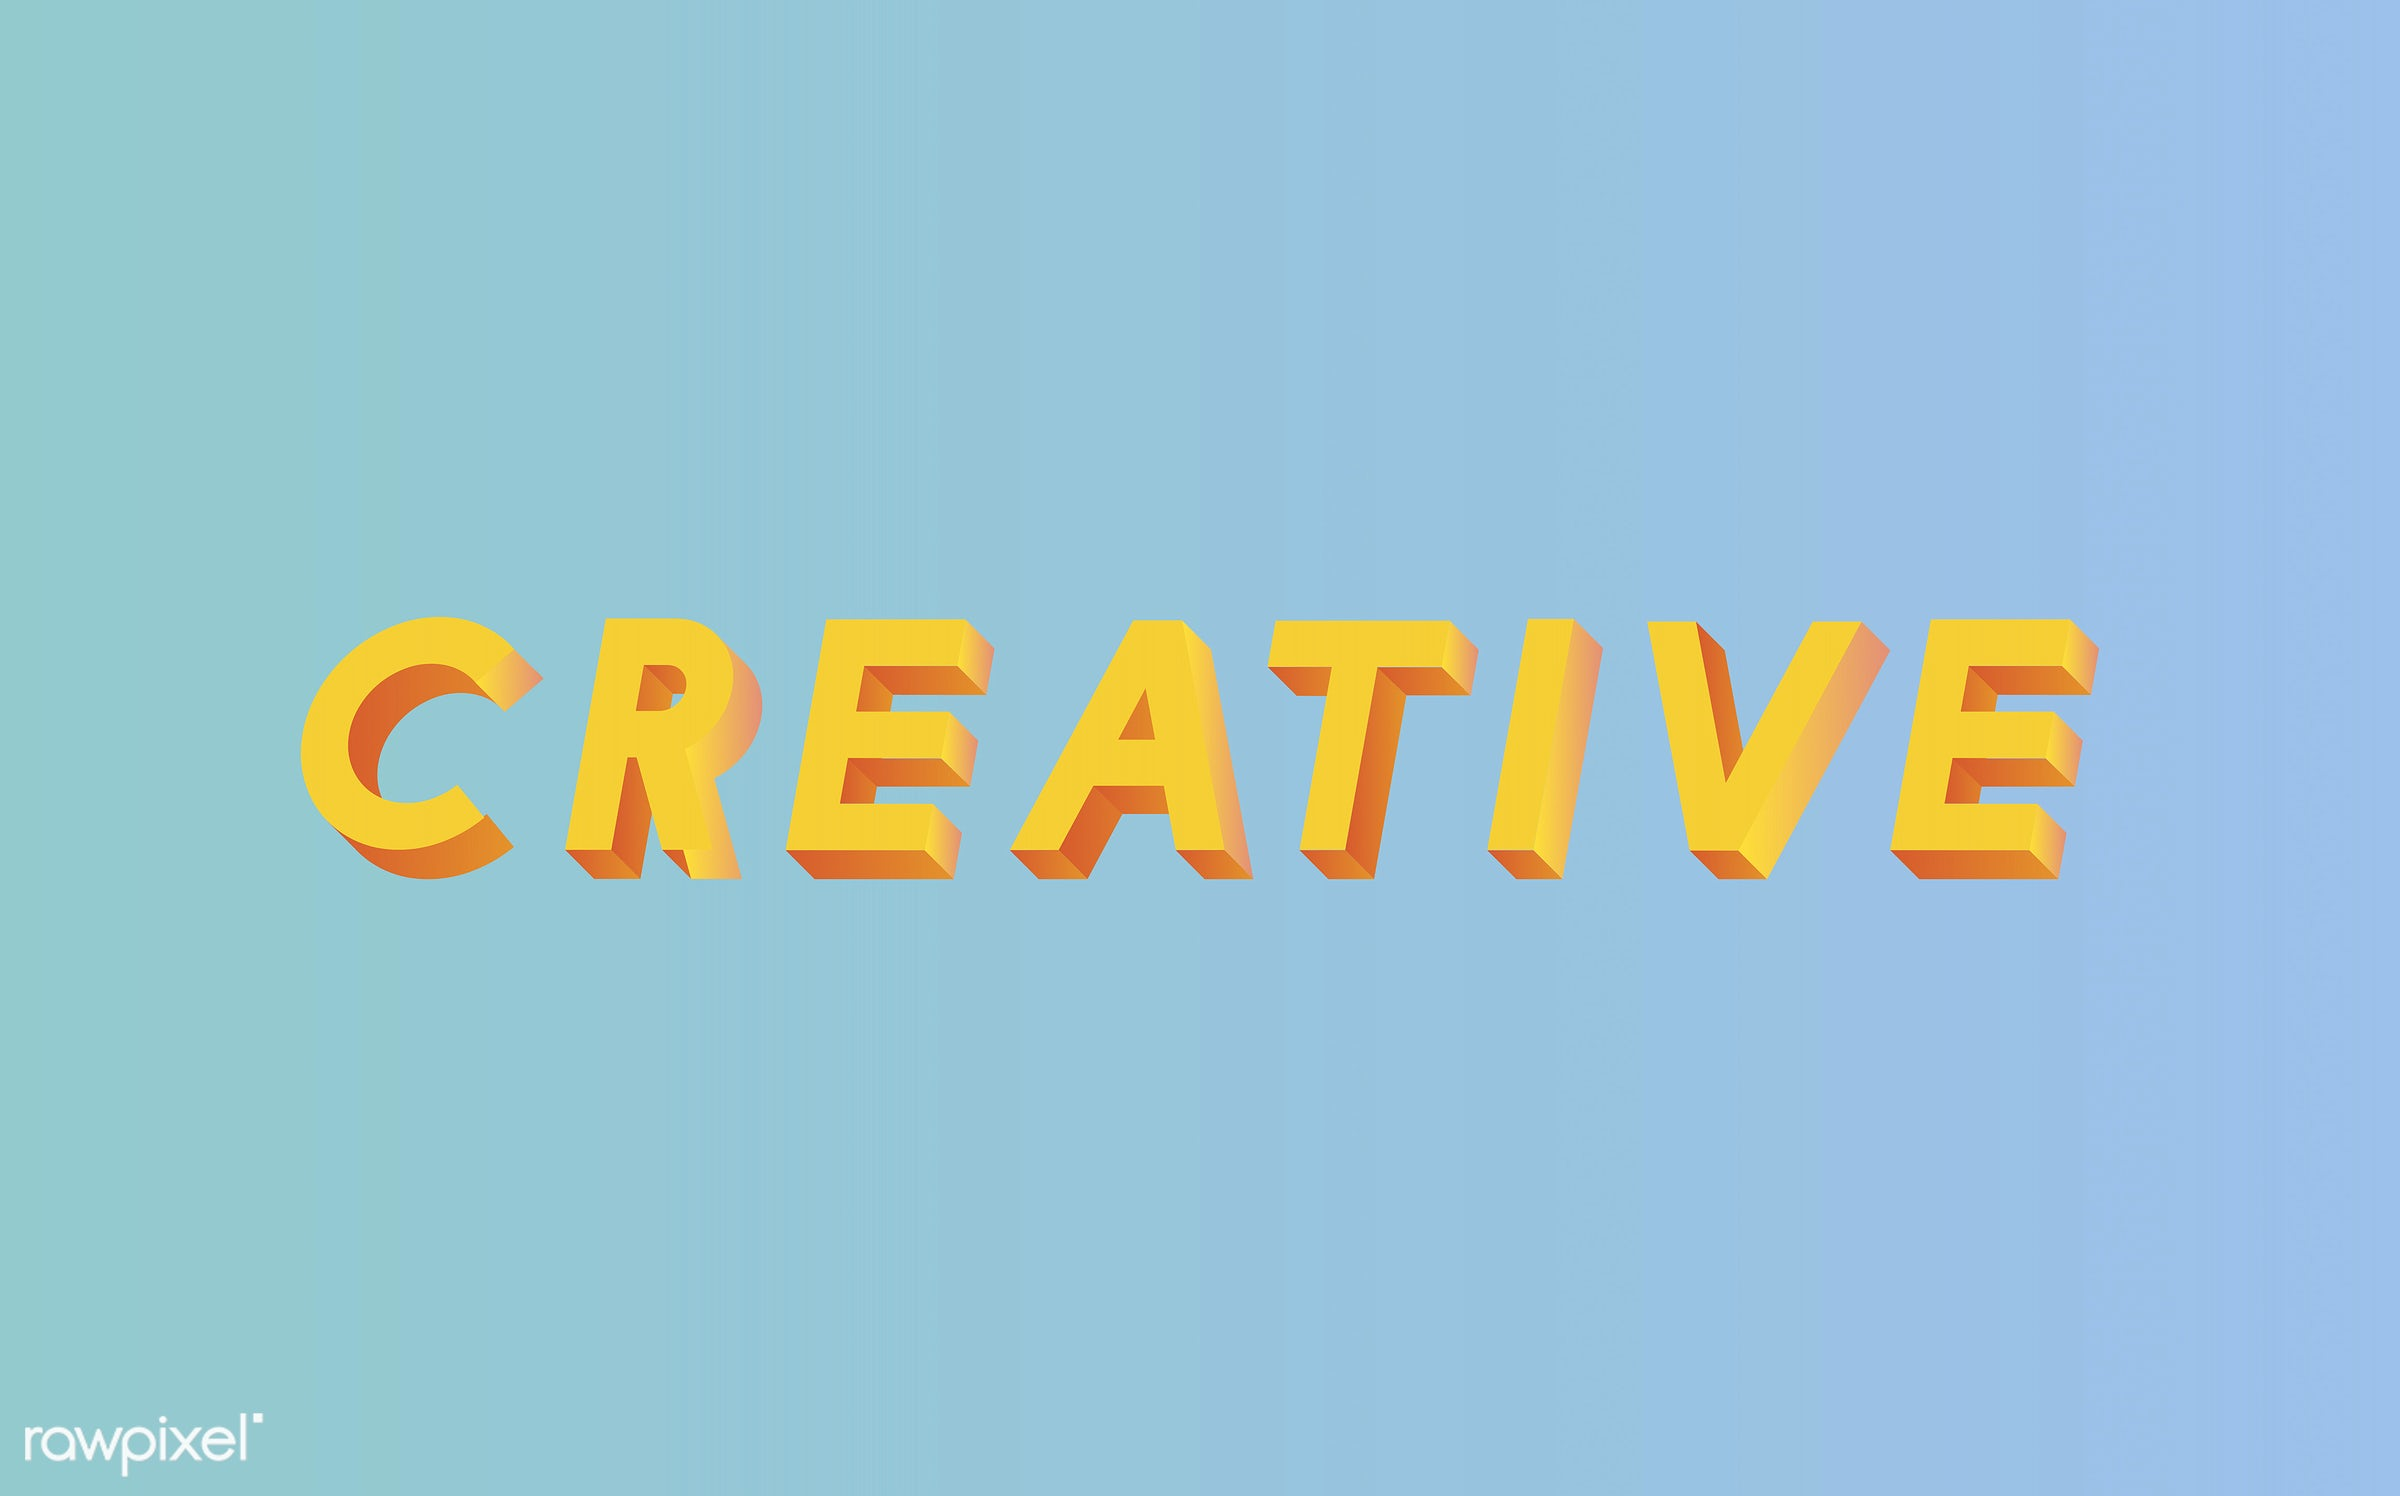 neon, colorful, 3d, three dimensional, vector, illustration, graphic, word, blue, yellow, creative, creativity